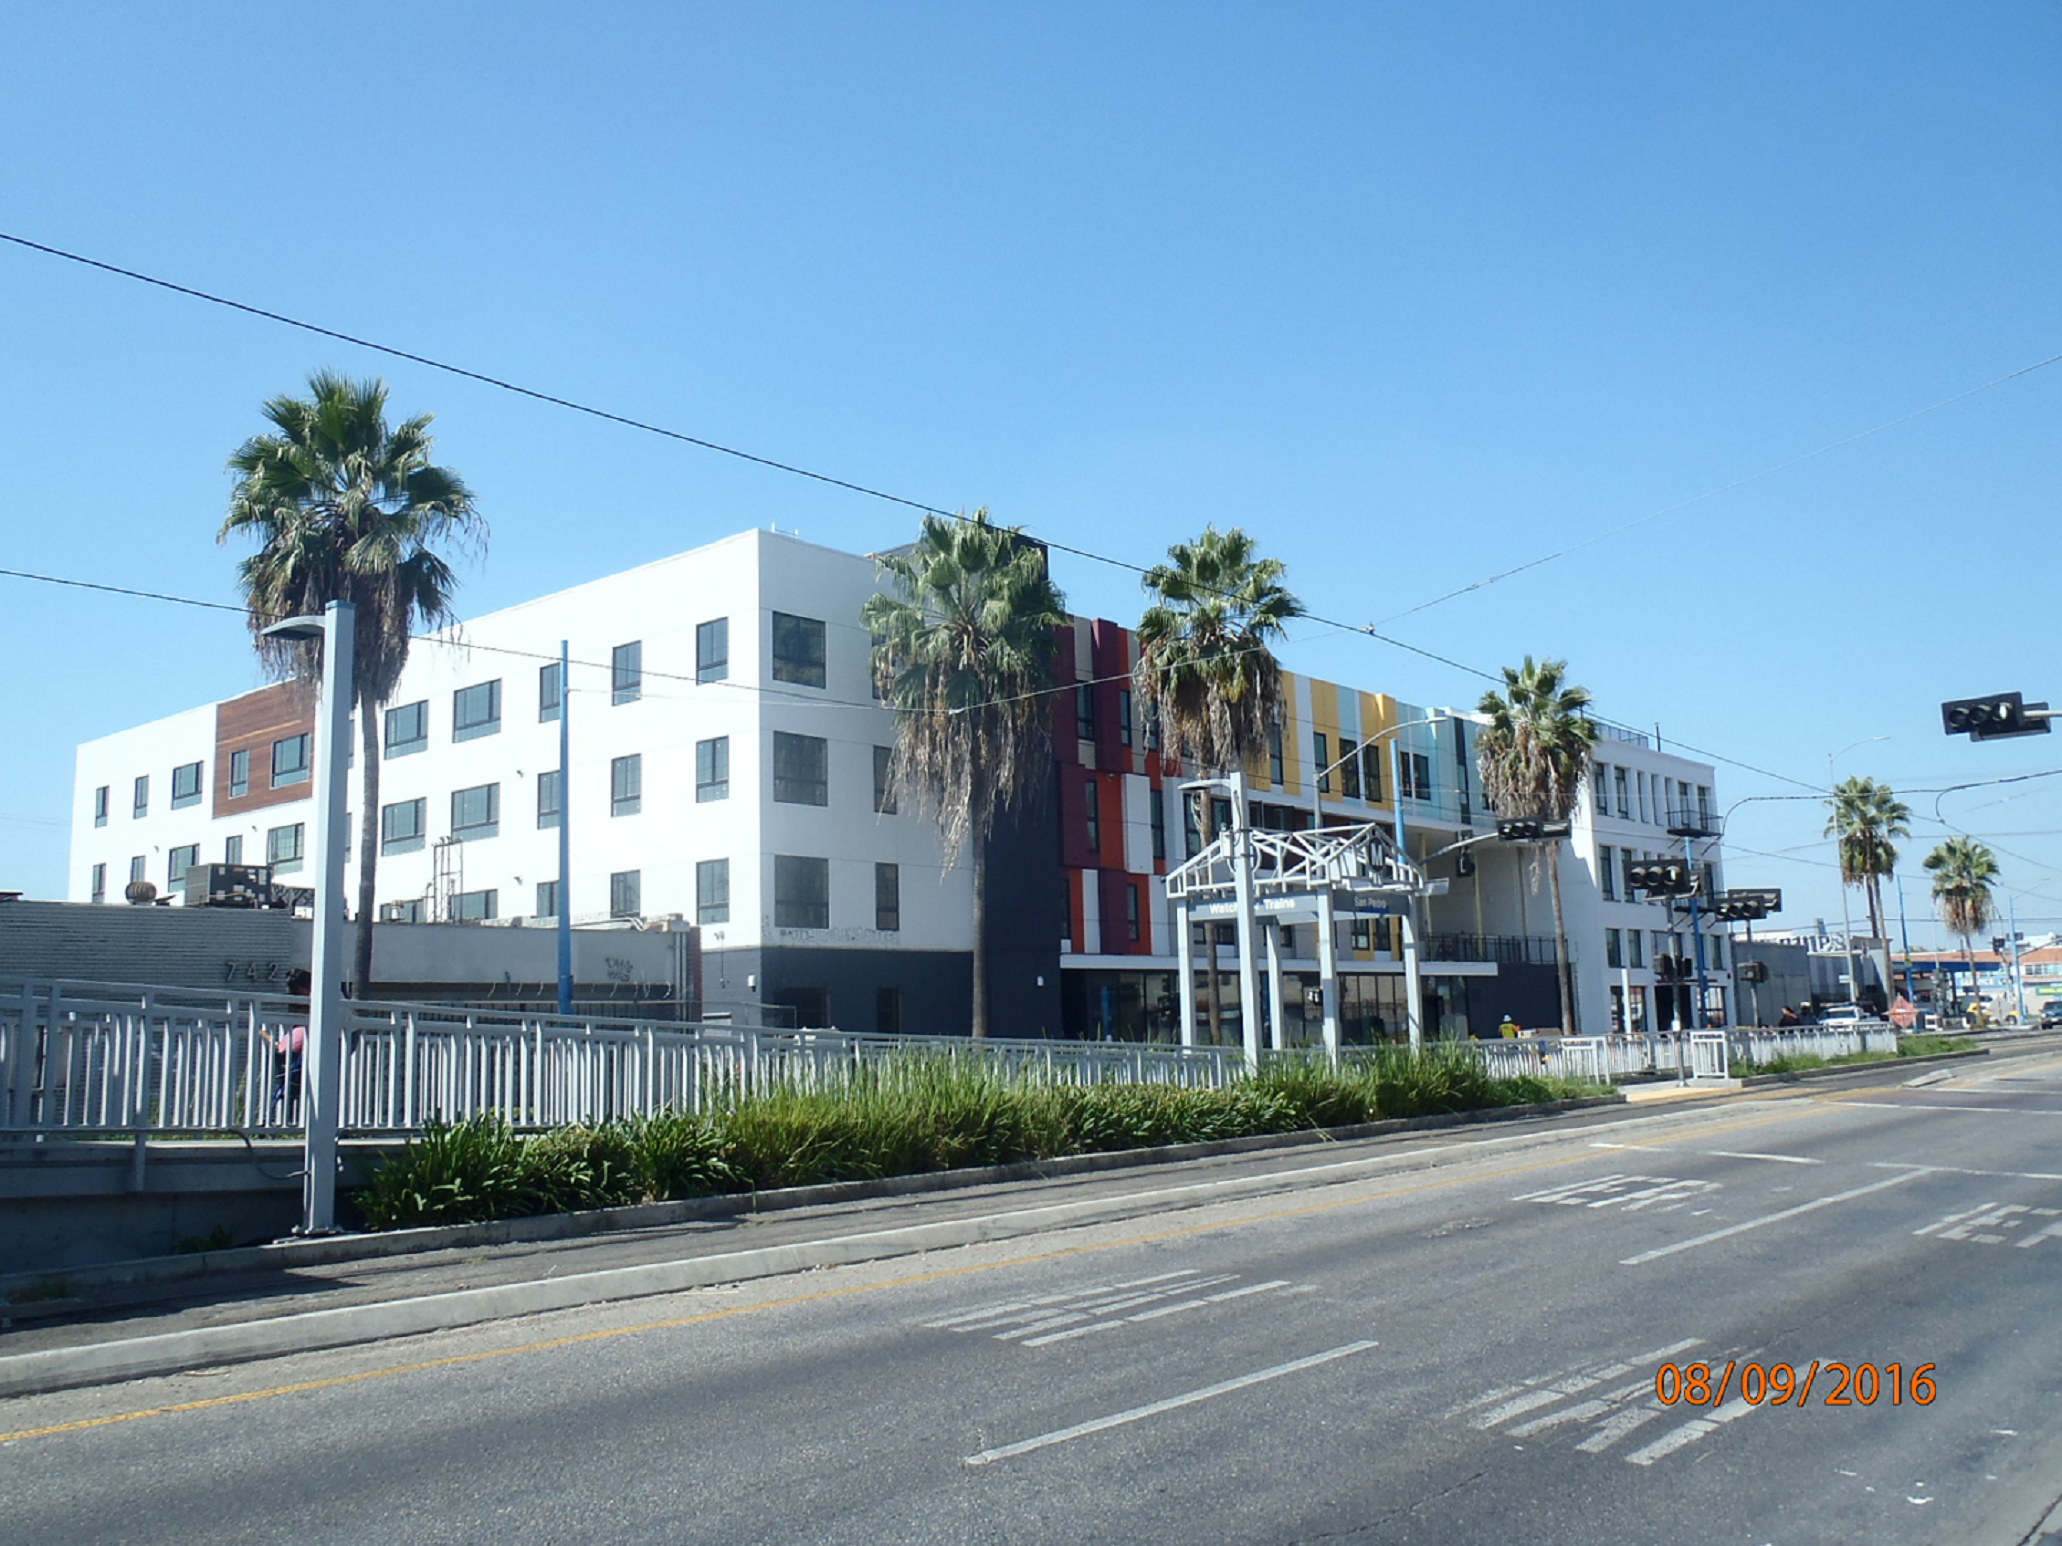 Four story white modern building with small stripes of red and yellow. Building is adjacent to a metrolink station. Entry way is ground level with tall windows. There are palm trees on the sidewalk in front of the building.